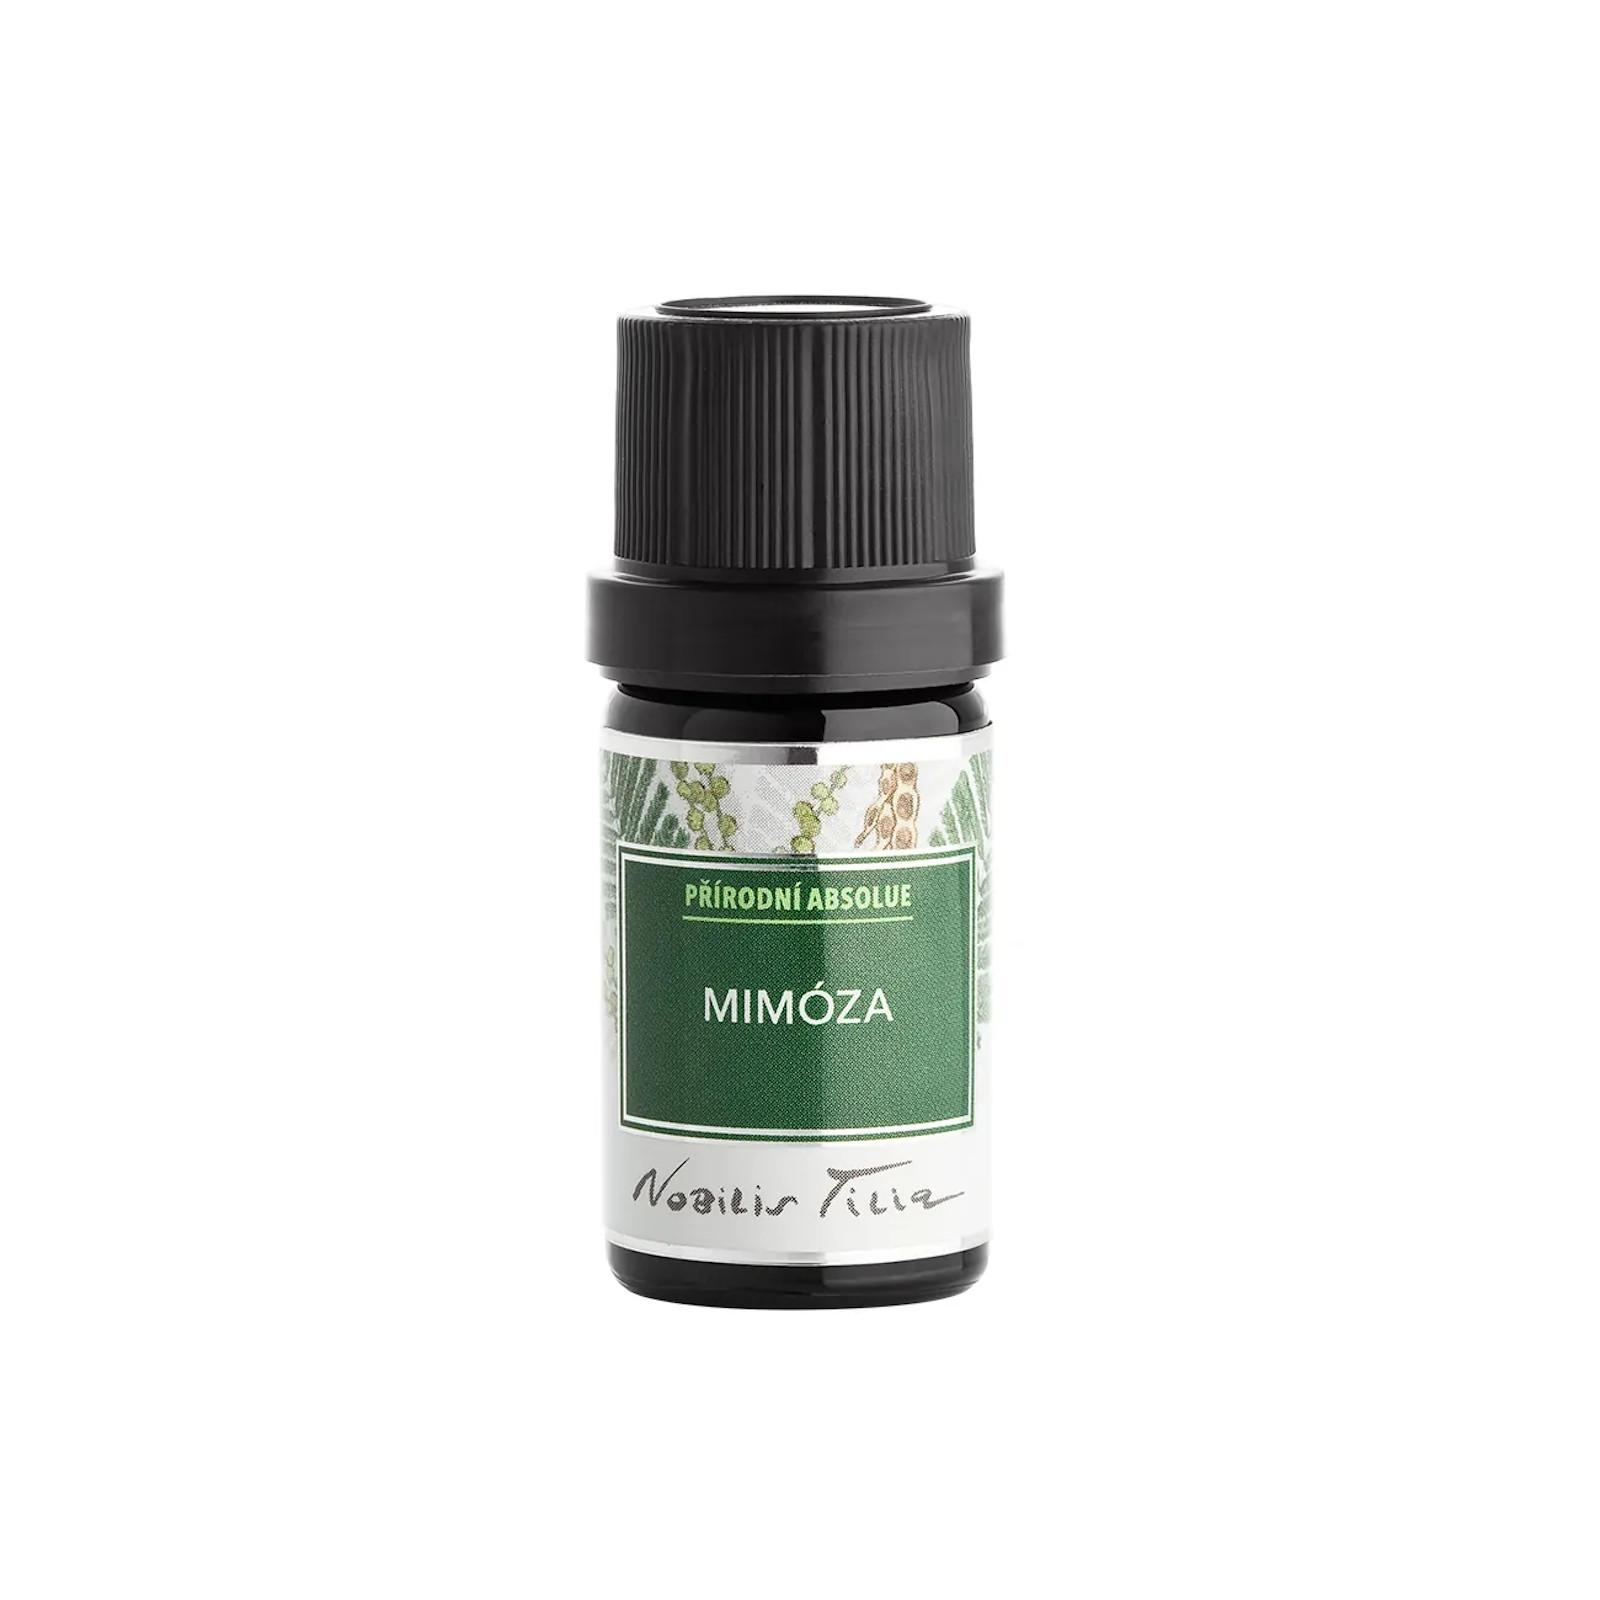 Nobilis Tilia Mimóza absolue 5 ml